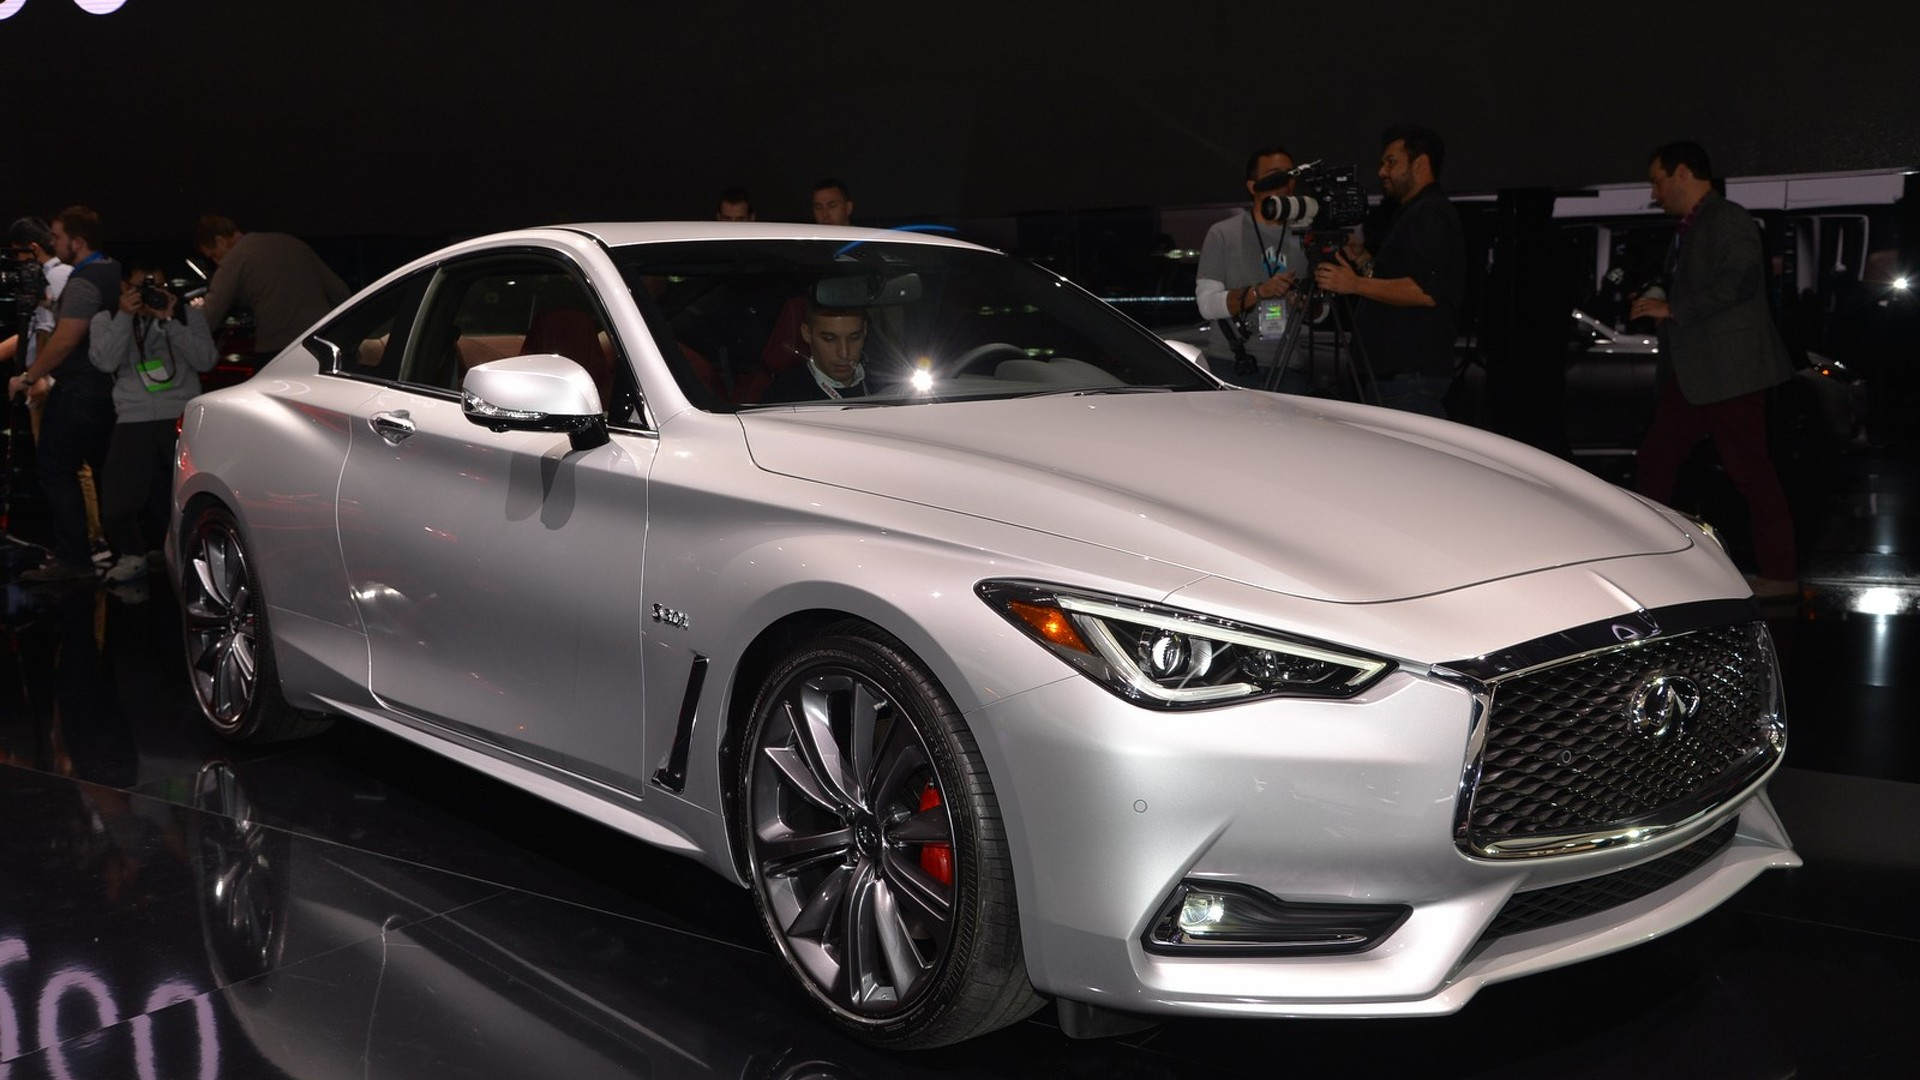 2017 Infiniti Q60 Coupe Bows In Detroit With 400 Hp Biturbo V6 Live Pics